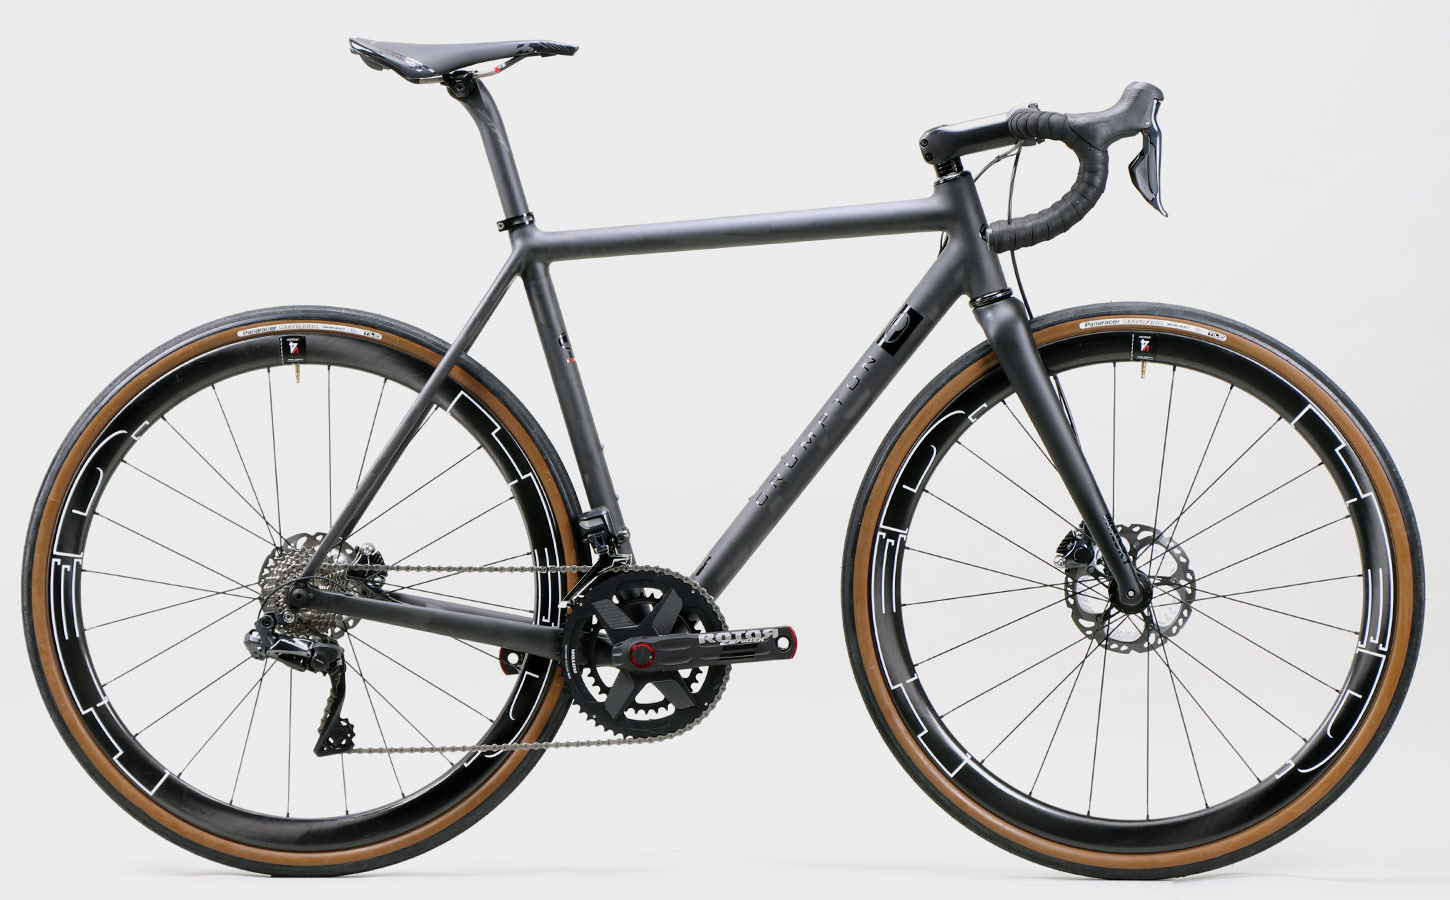 T5 All-Road shown with 700x38 tire size option, Ultegra Di2 with hydraulic discs